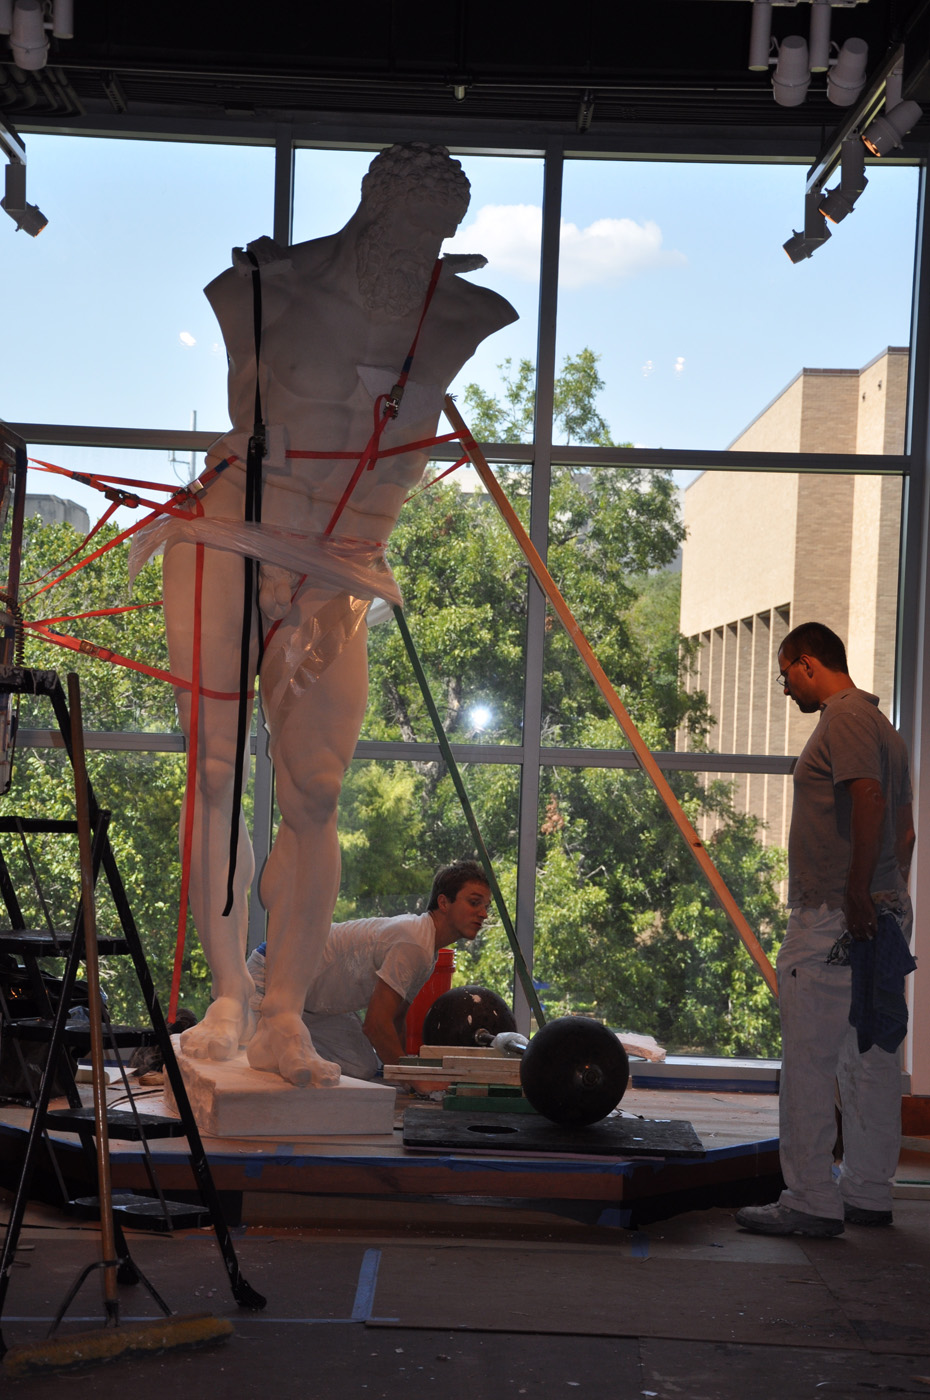 Front view of the statue of the Farnese Hercules strapped and being installed, while two men work on it, in the main lobby, in 2009.